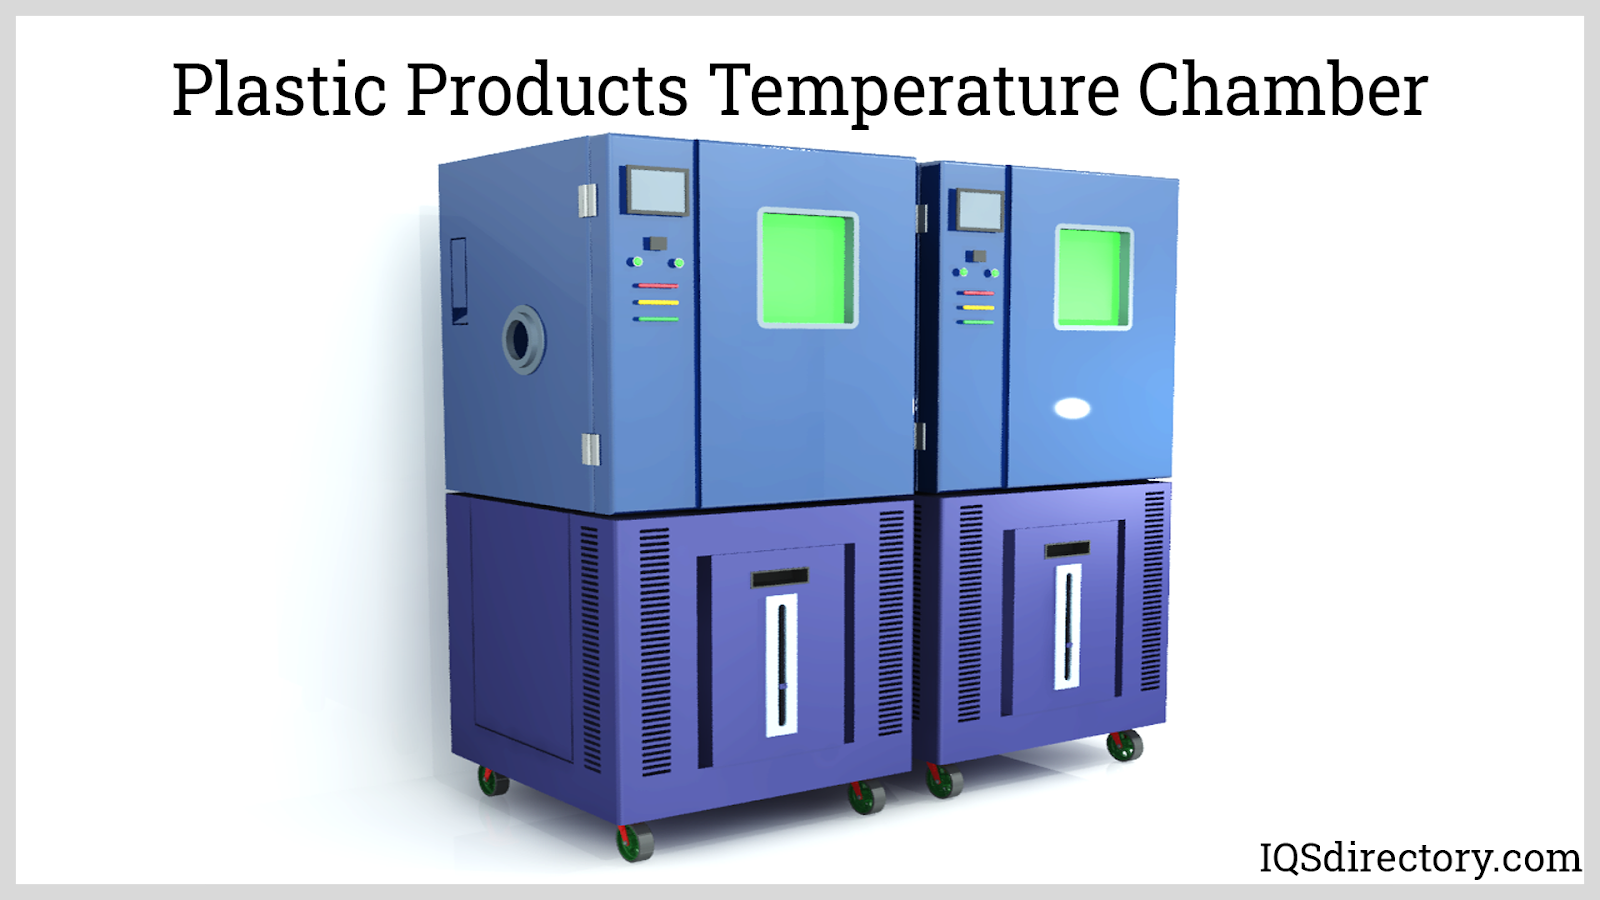 Plastic Products Temperature Chamber